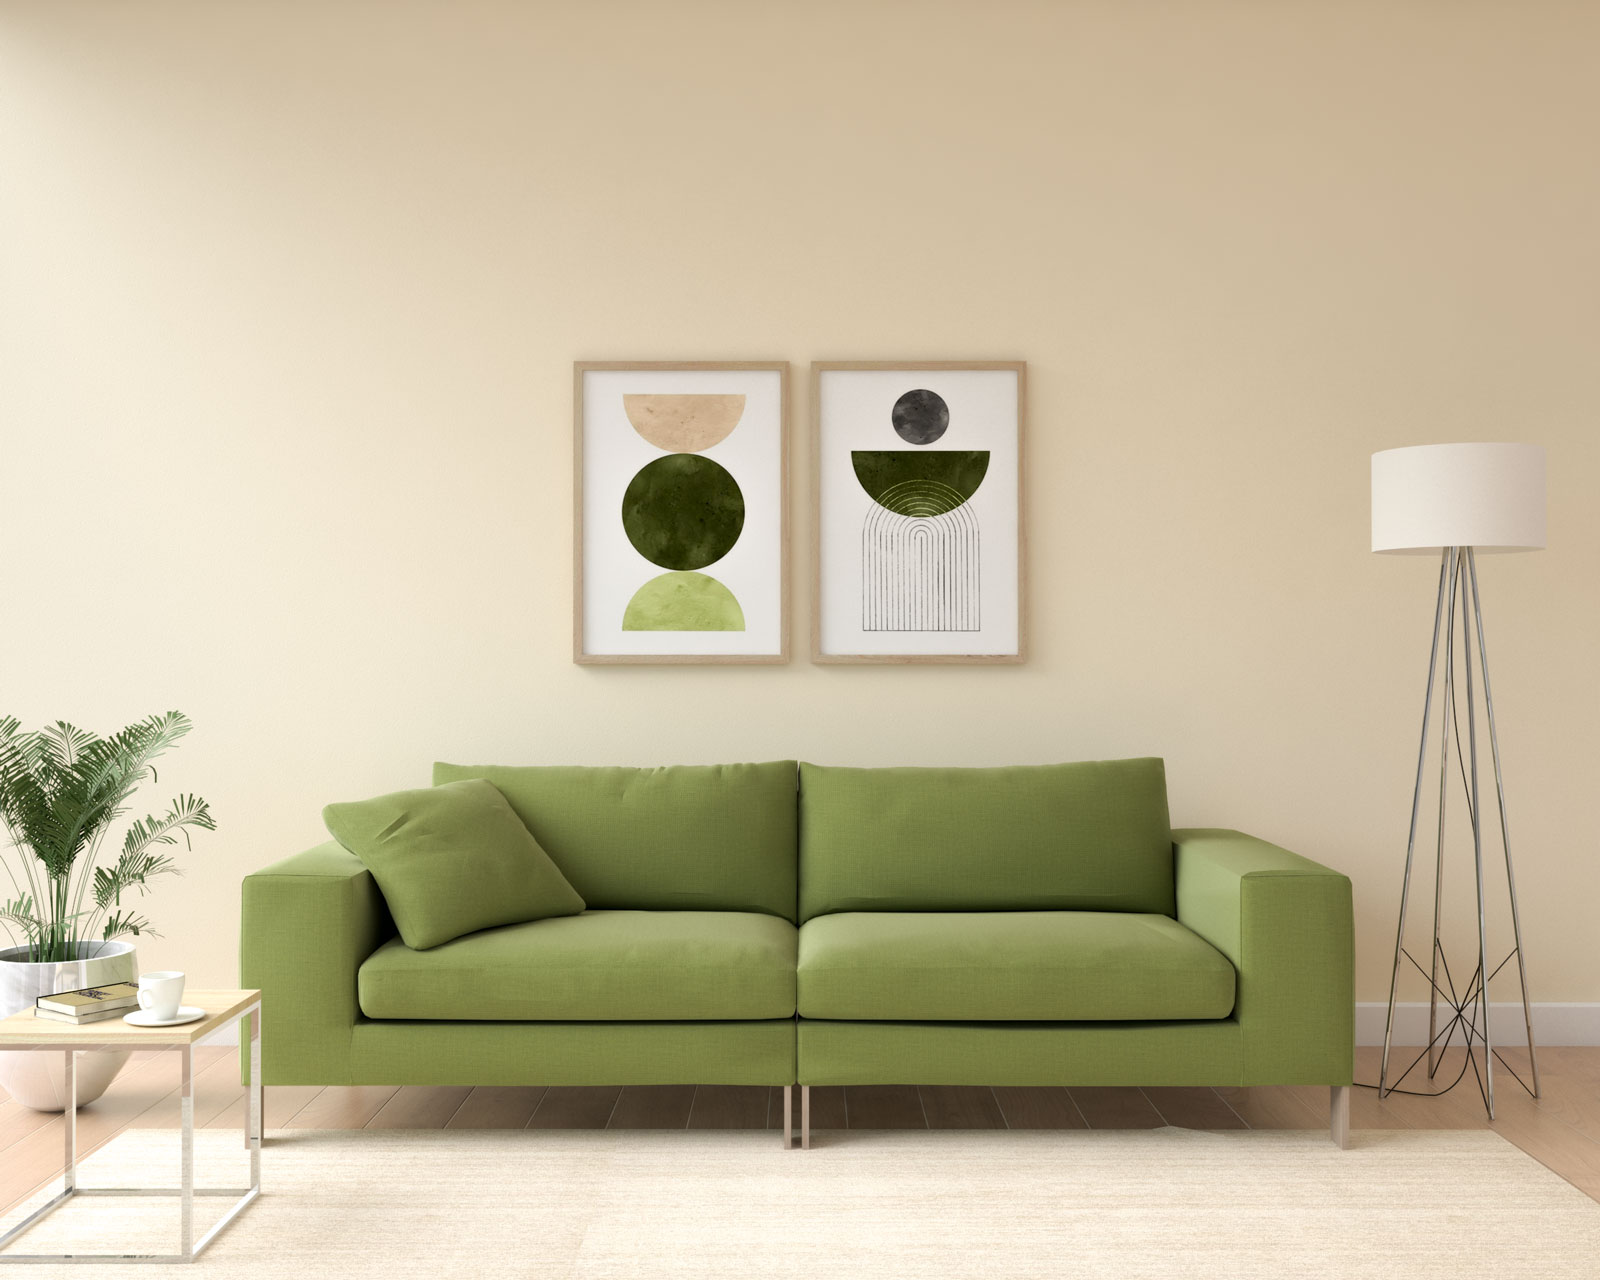 Olive couch with light peach wall